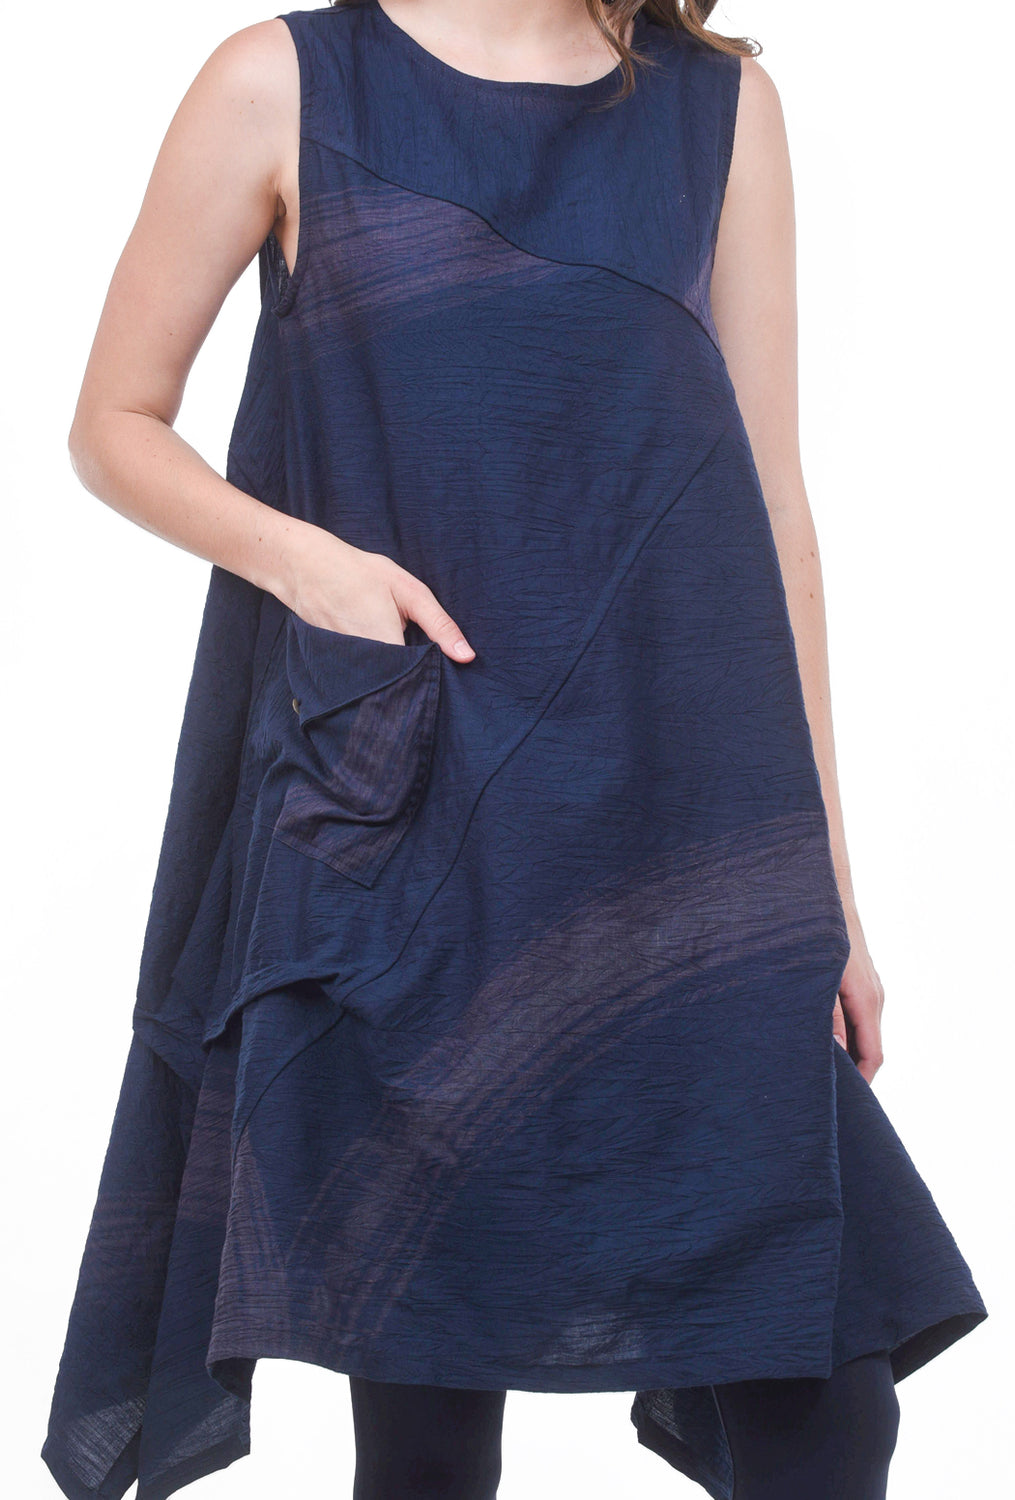 Mao Mam Mao Mam Wing Dress, Navy One Size Navy